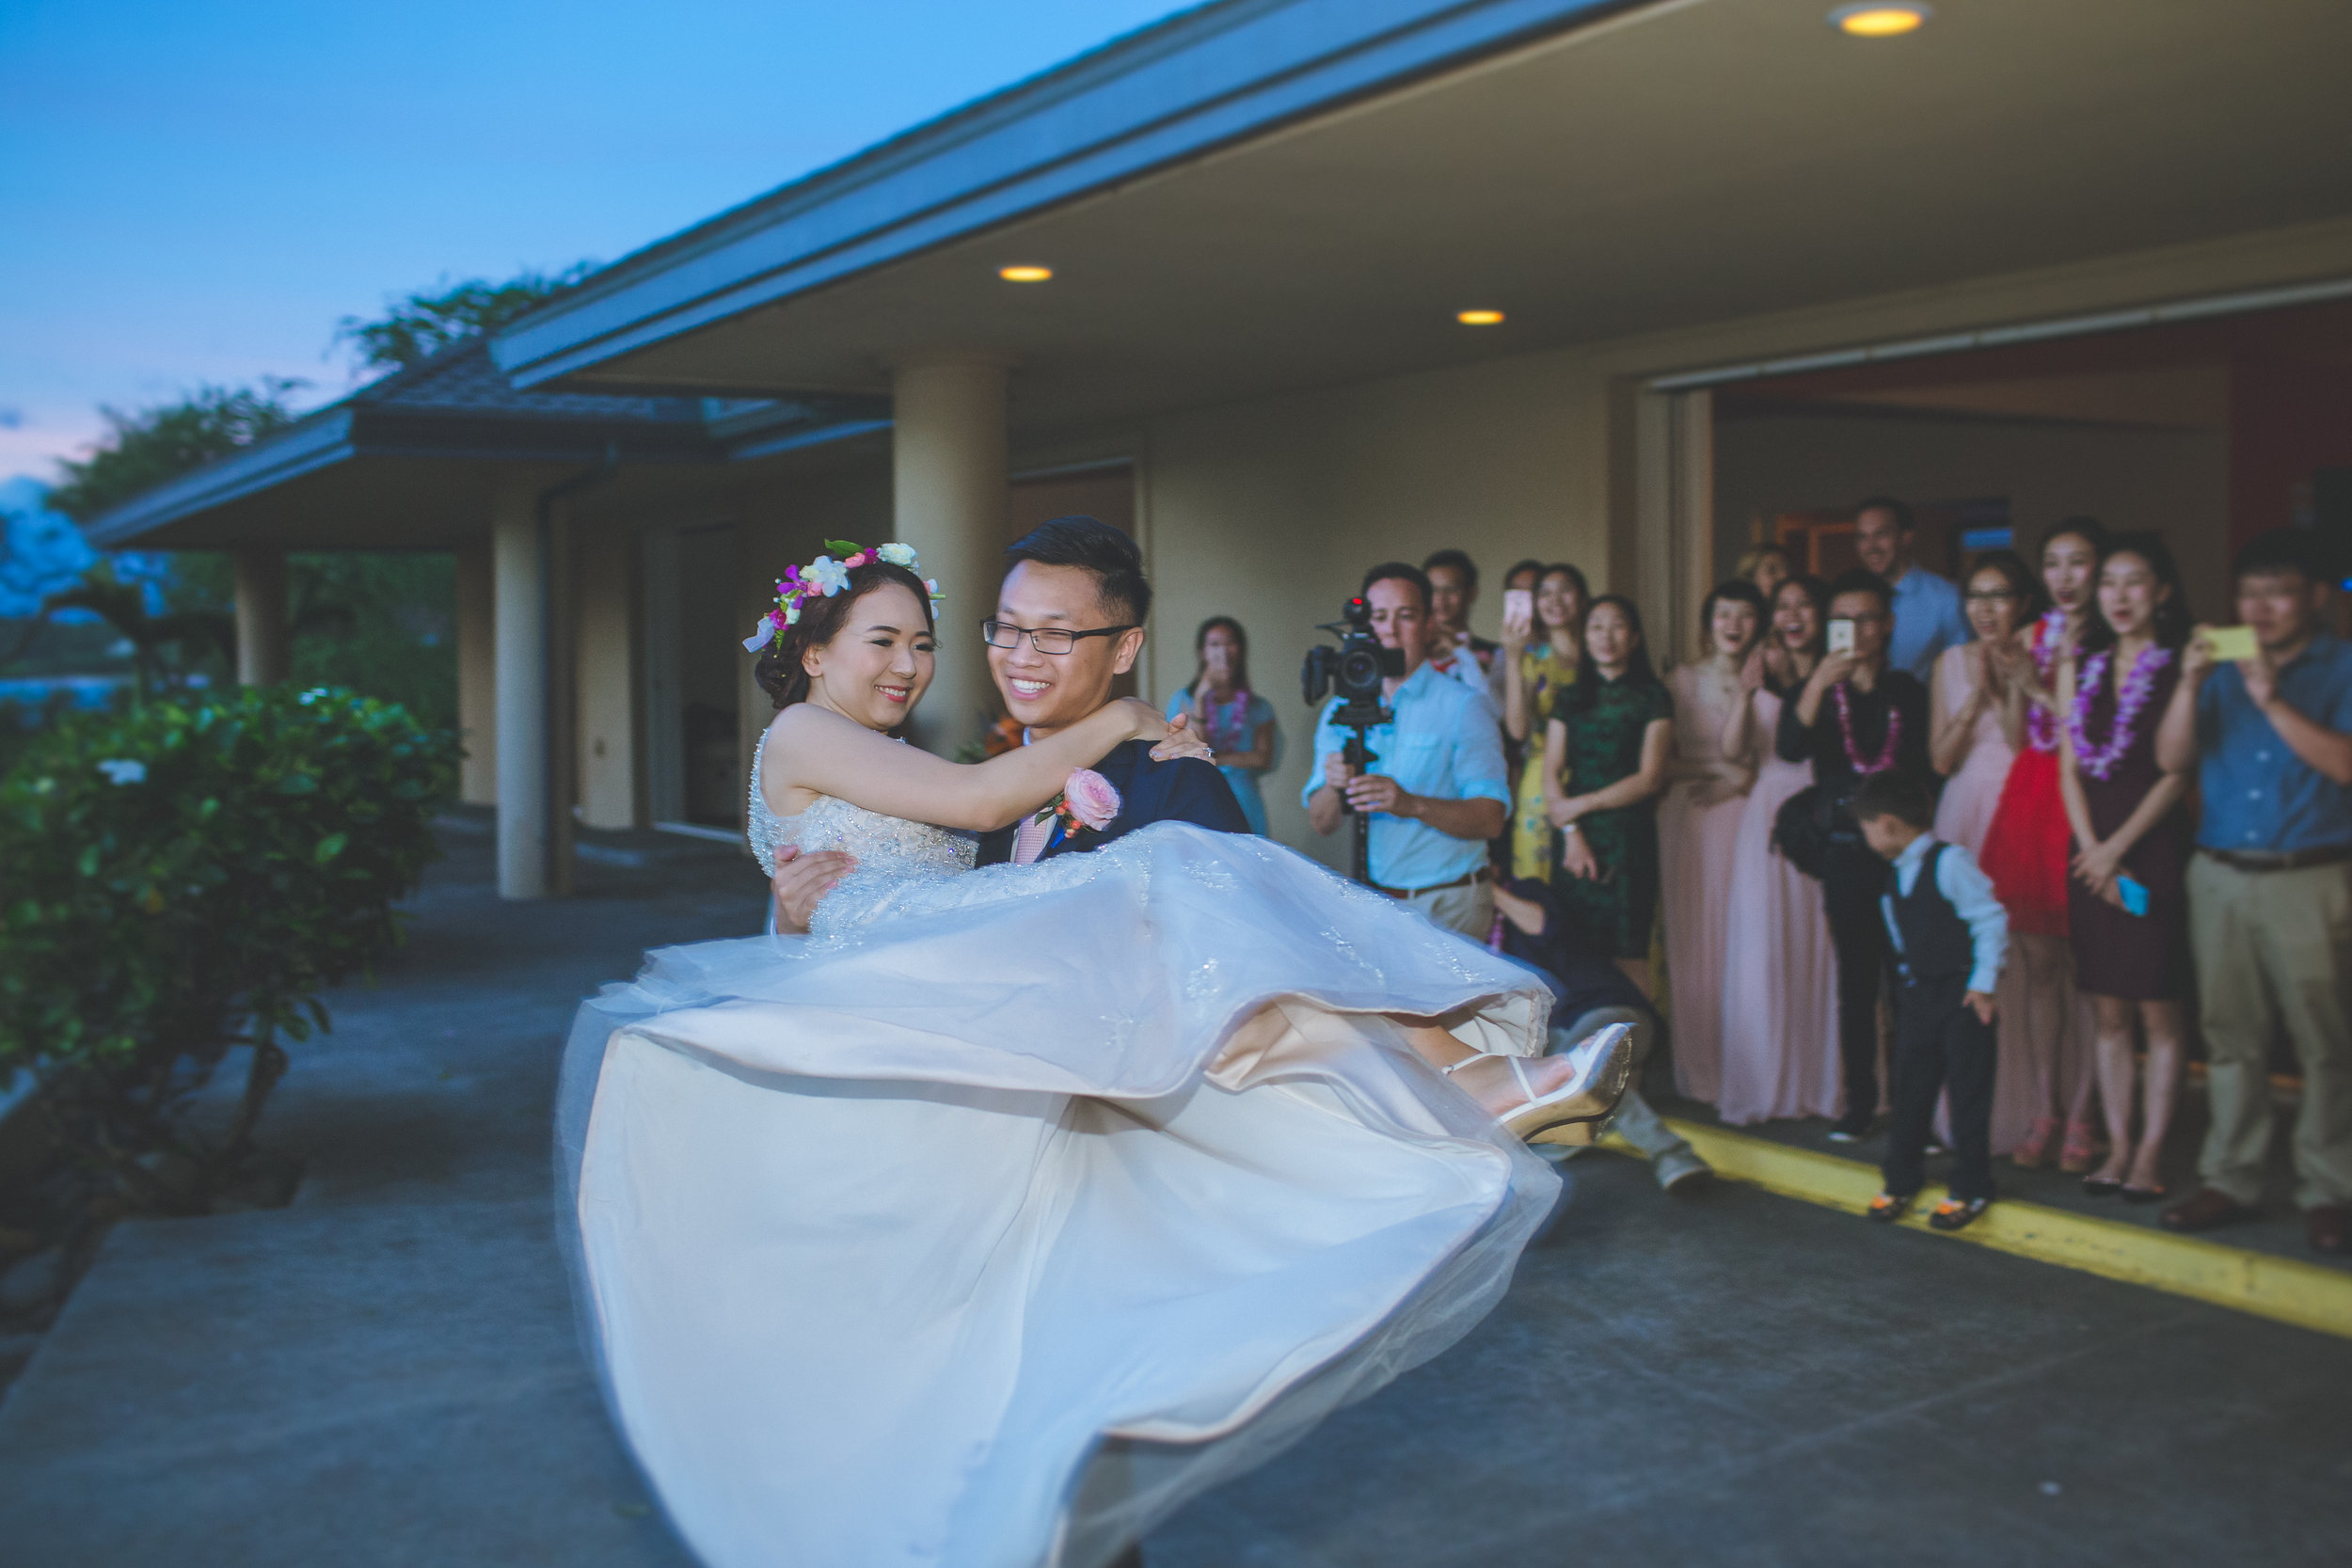 wedding dance Bliss - Dmitri and Sandra Photography